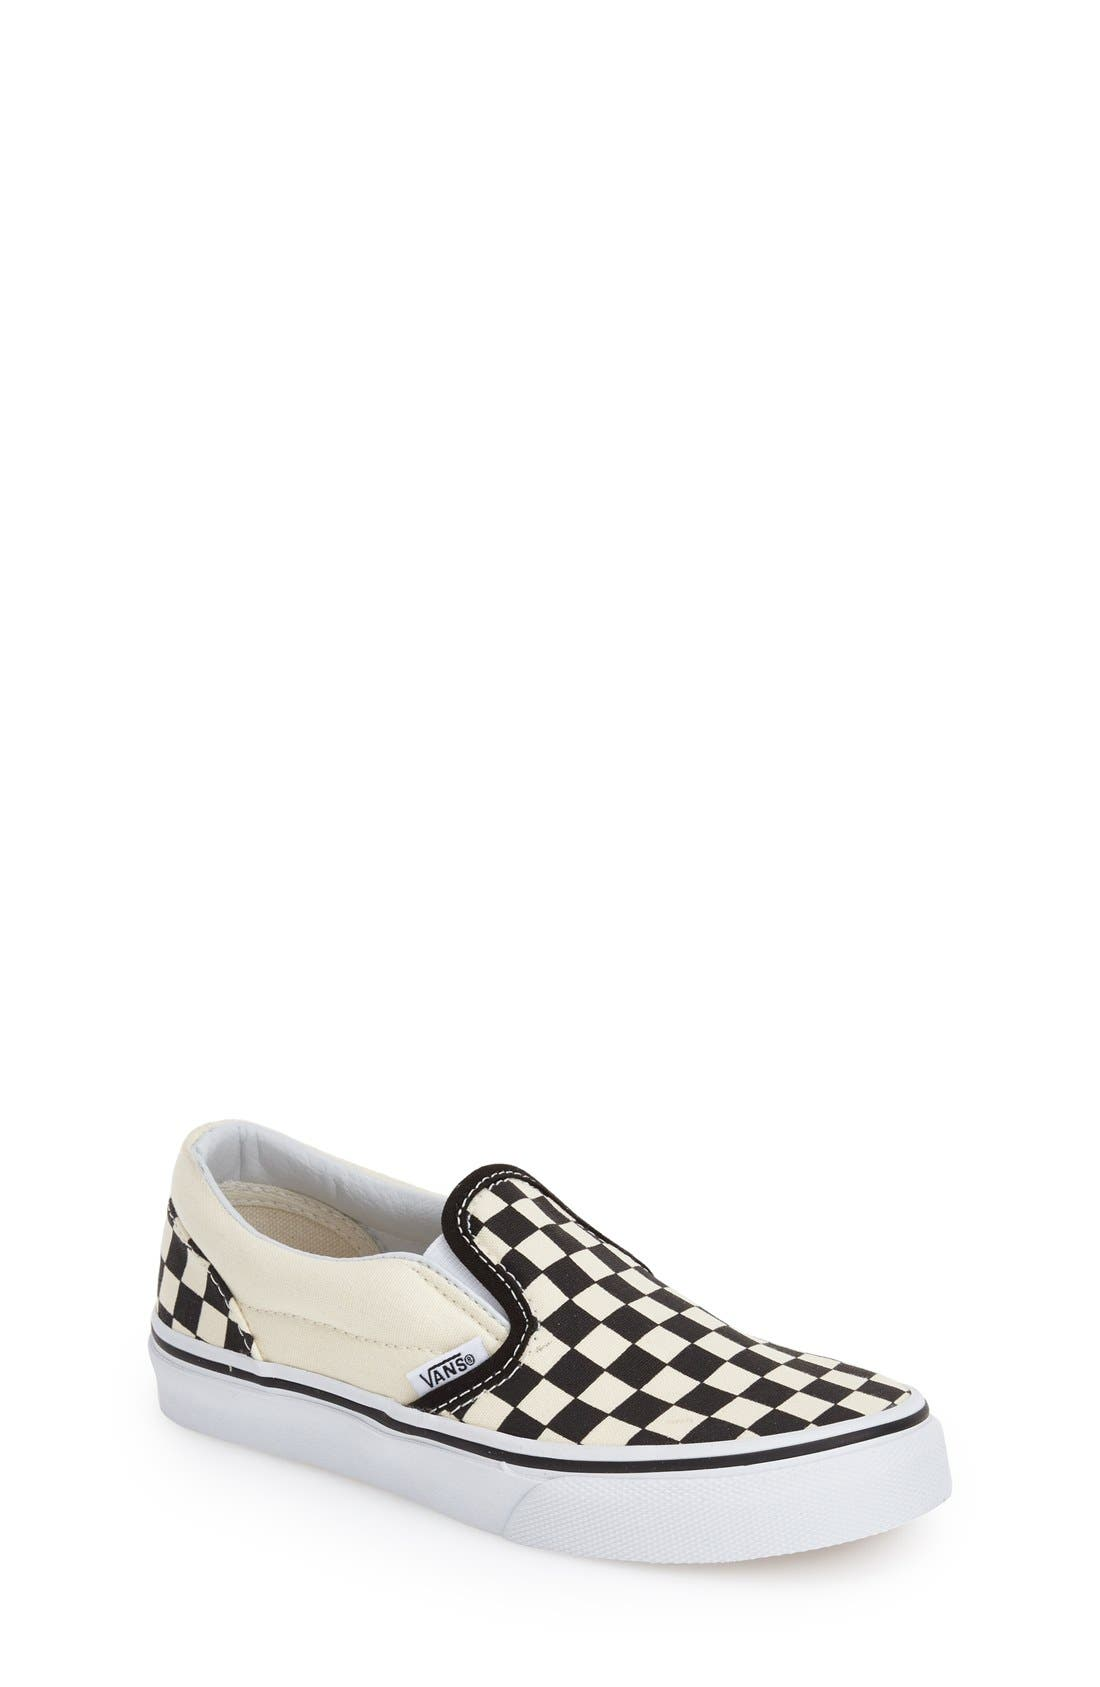 Vans 'Classic - Checker' Slip-On (Toddler, Little Kid & Big Kid)